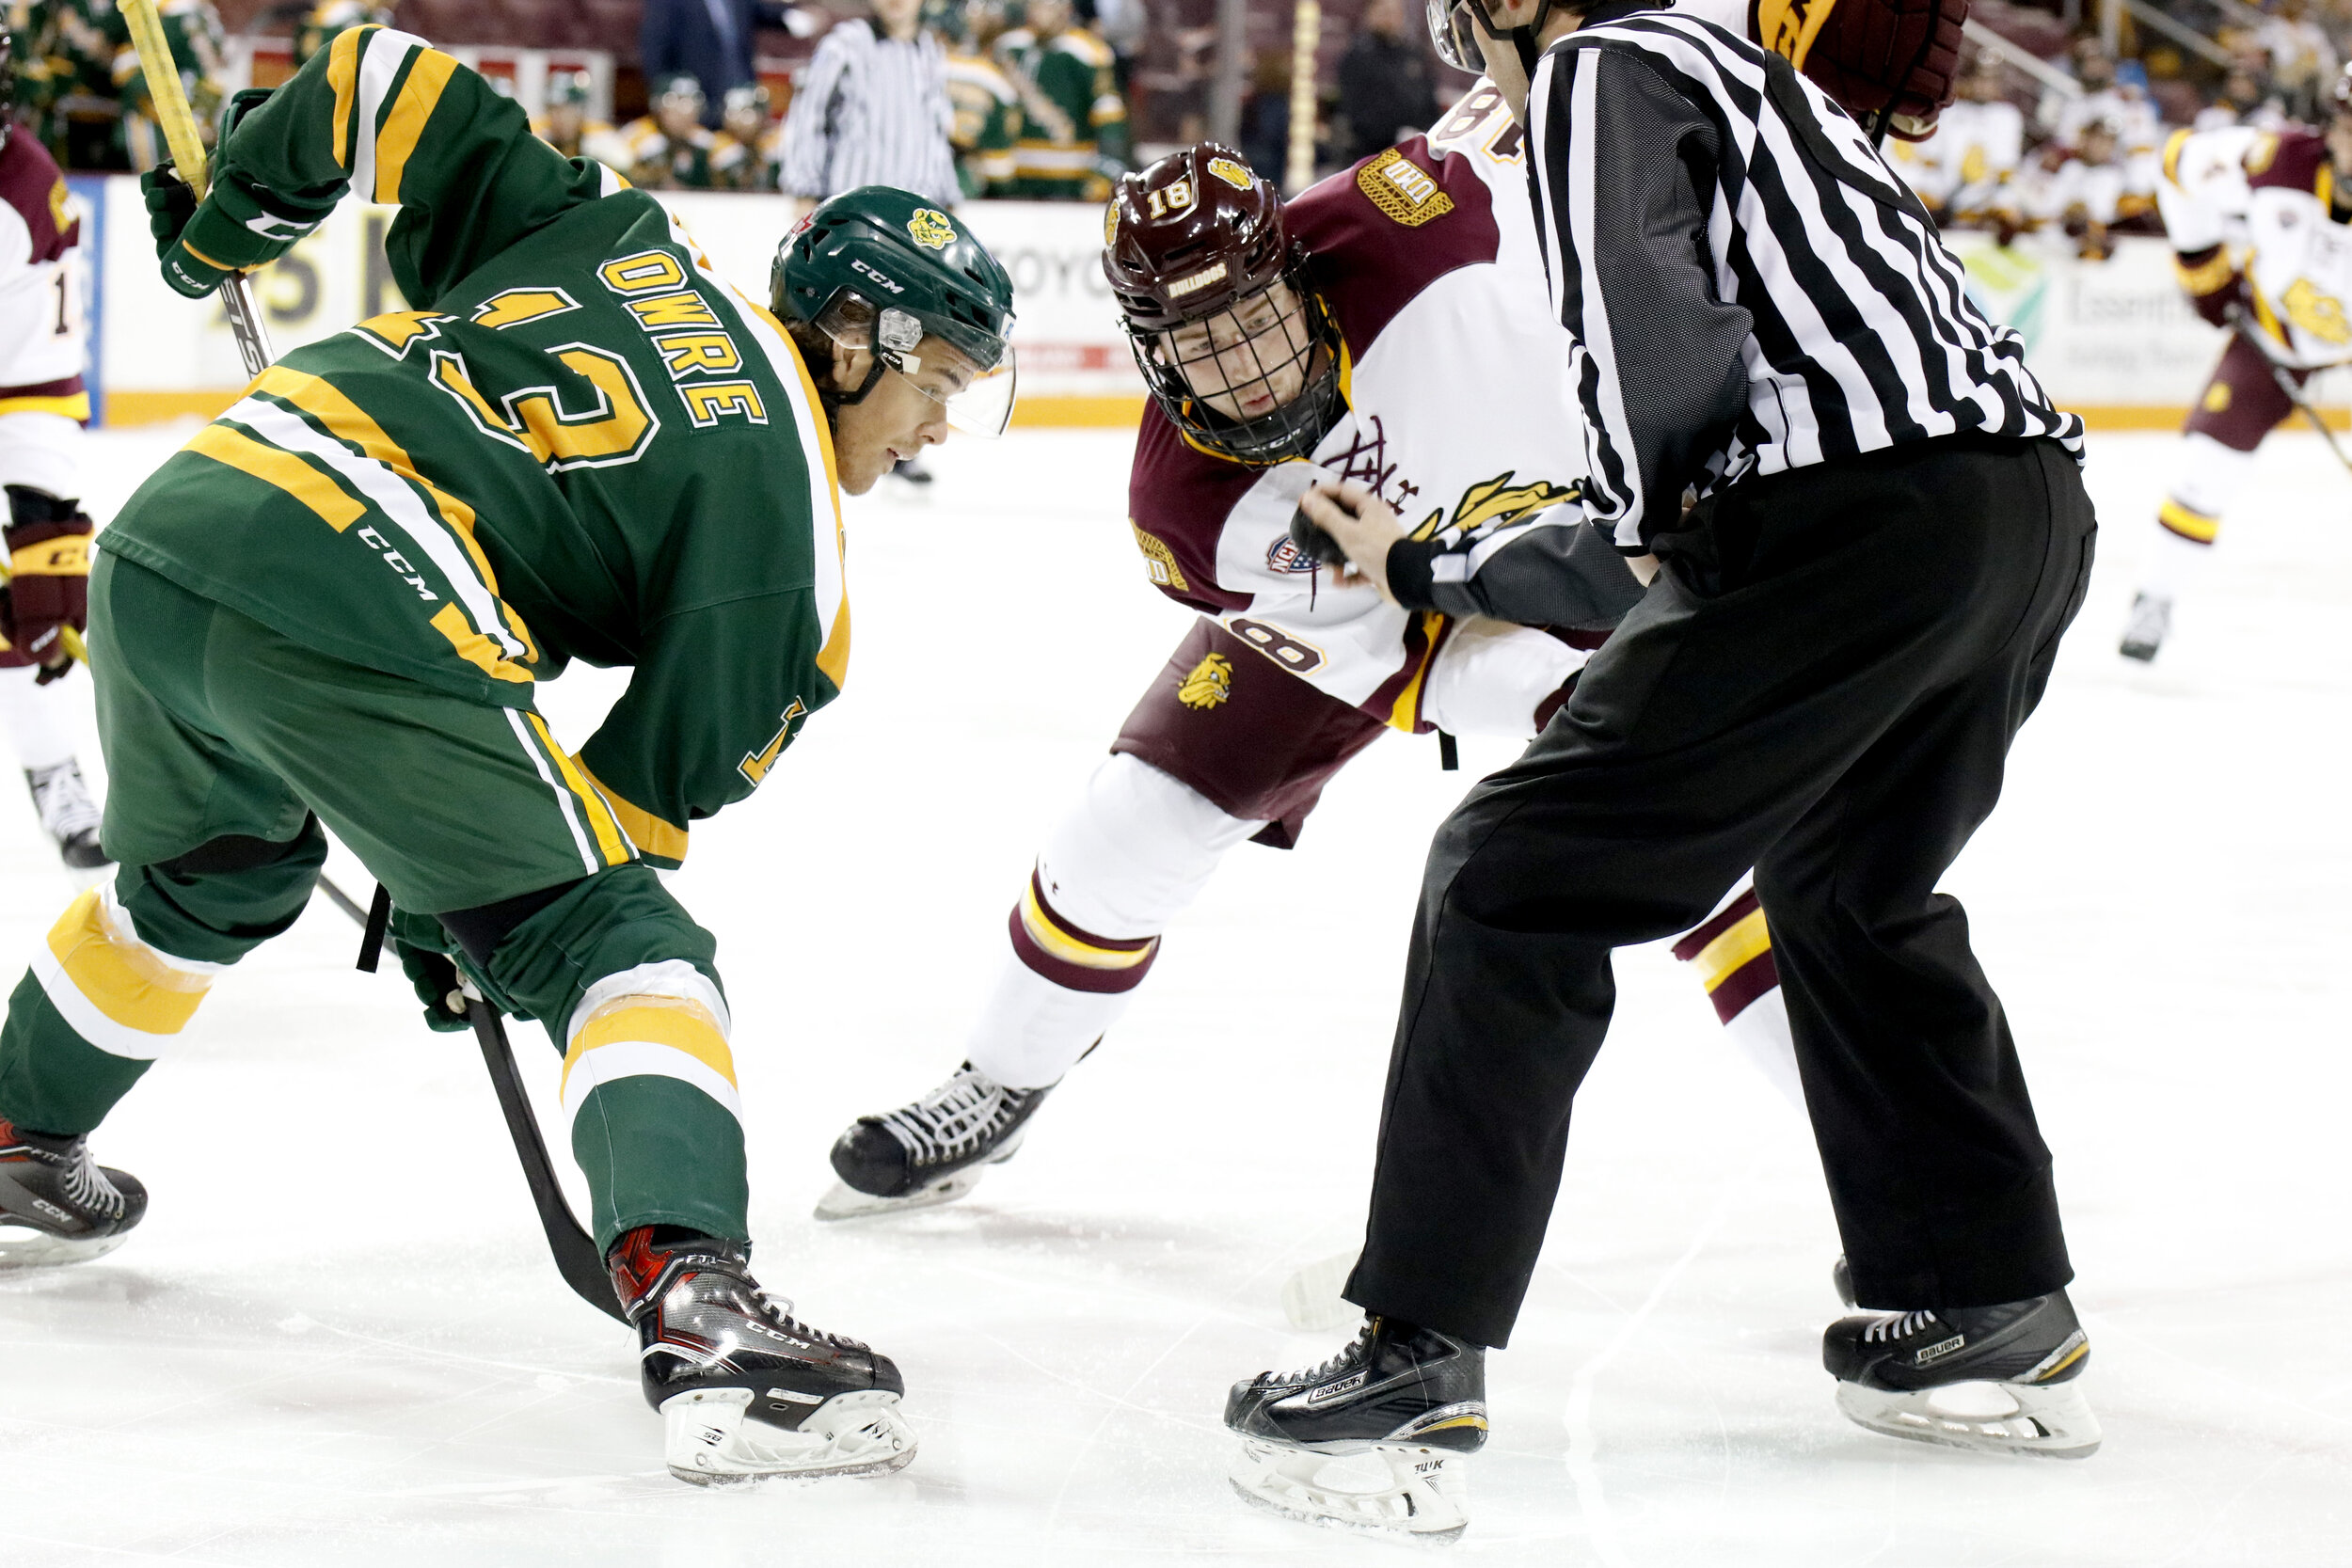 Sophomore center Jesse Jacques (18) takes a face off against Steven Owre (13) of Alberta during Saturday night's exhibition contest. The Bulldogs would go on to lose 5-3. (Photo courtesy of Drew Smith/ UMD Athletics )